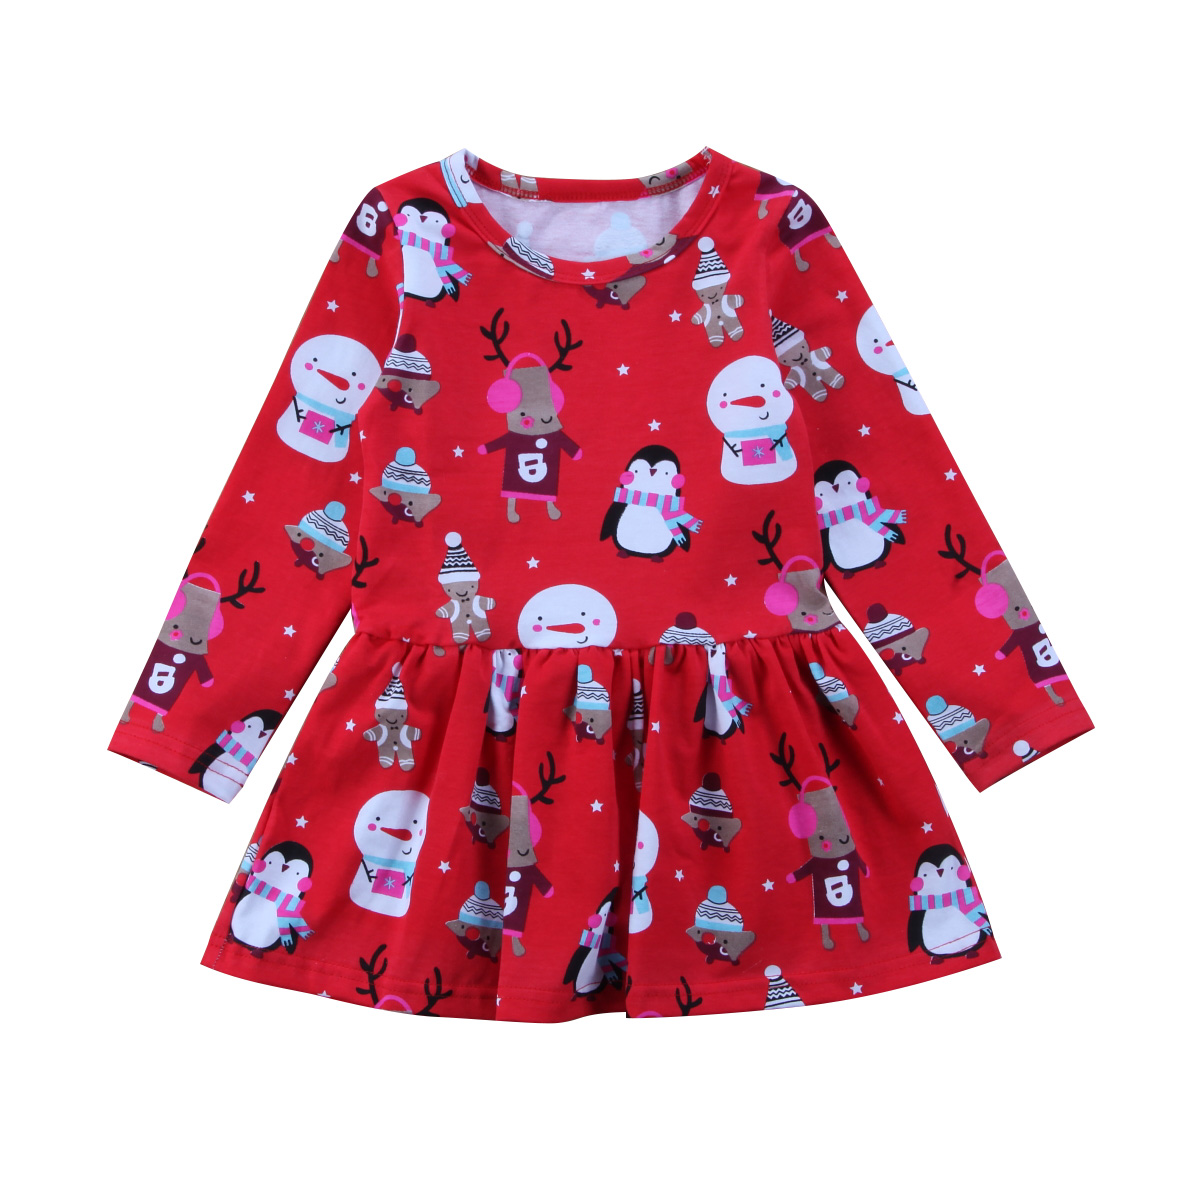 2-6Y christmas Kids Baby Girls dress red cartoon Snowman penguin Tutu Dress Outfits Boutique girls clothes xmas Gifts for girls girls christmas xmas dresses kids girls princess party carnival tutu dress baby girl red new year fancy party dress up outfits